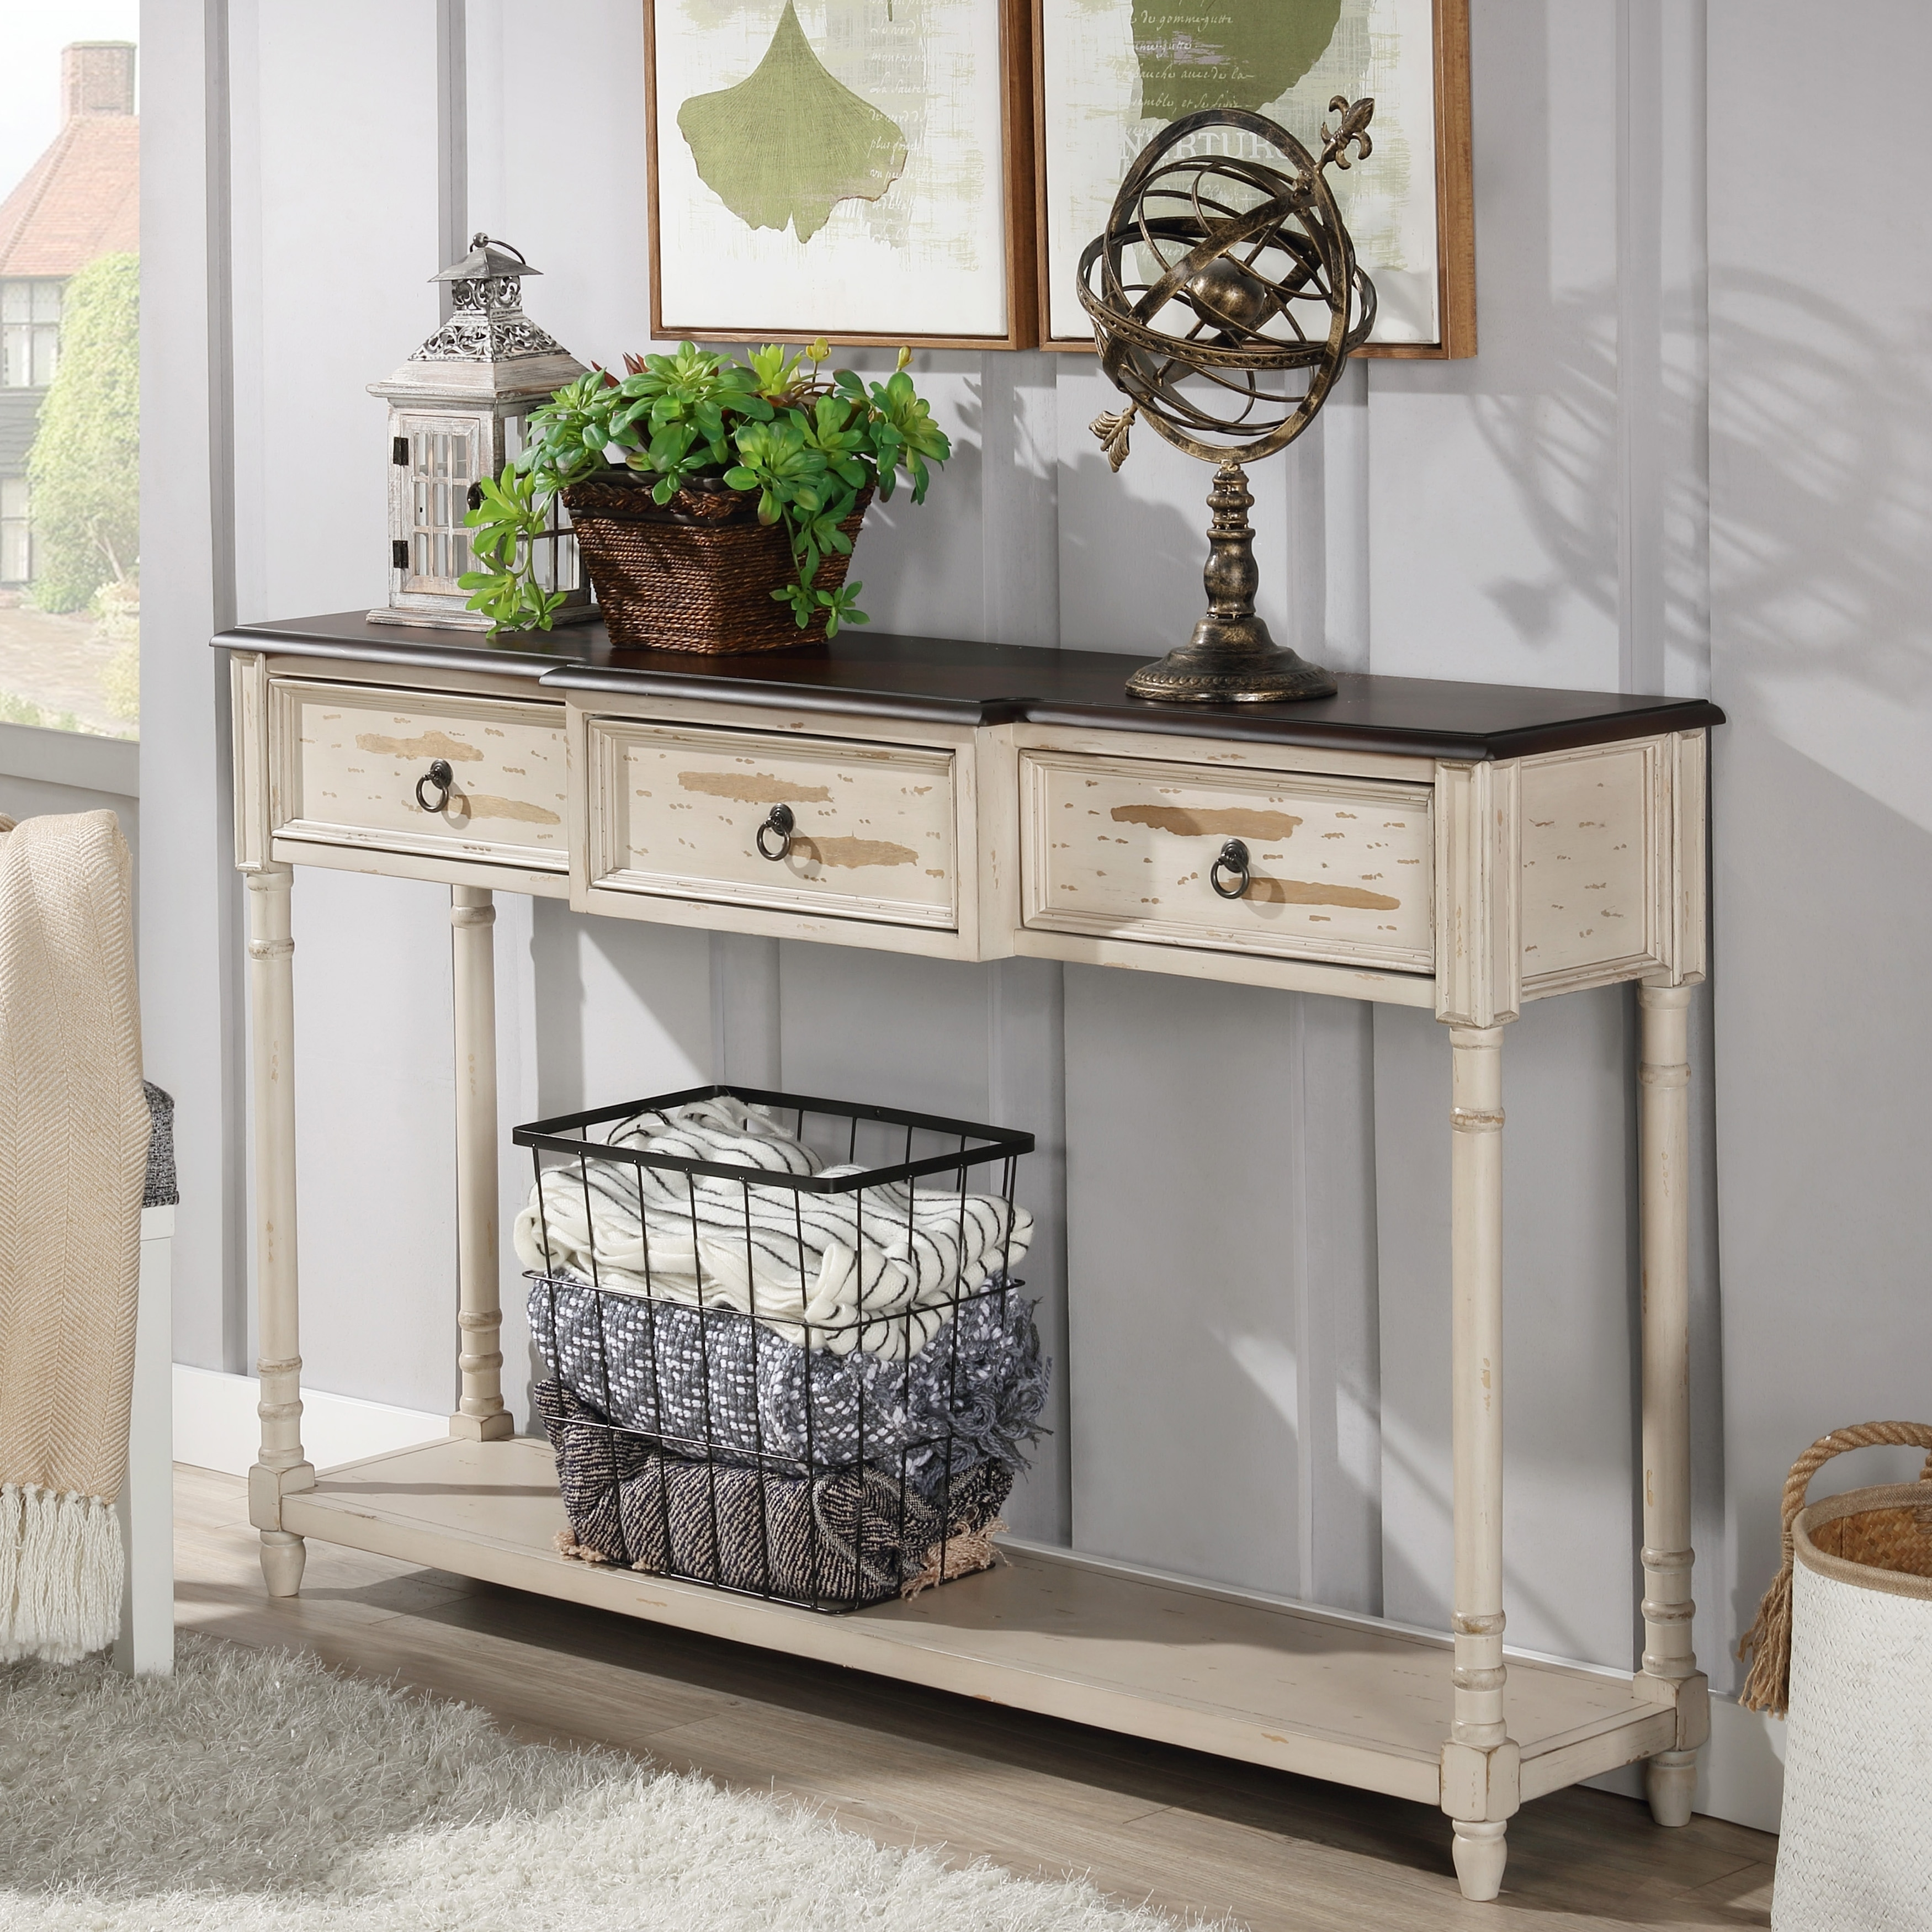 The Gray Barn Hogback Farmhouse Antique White Console Table On Sale Overstock 28893322